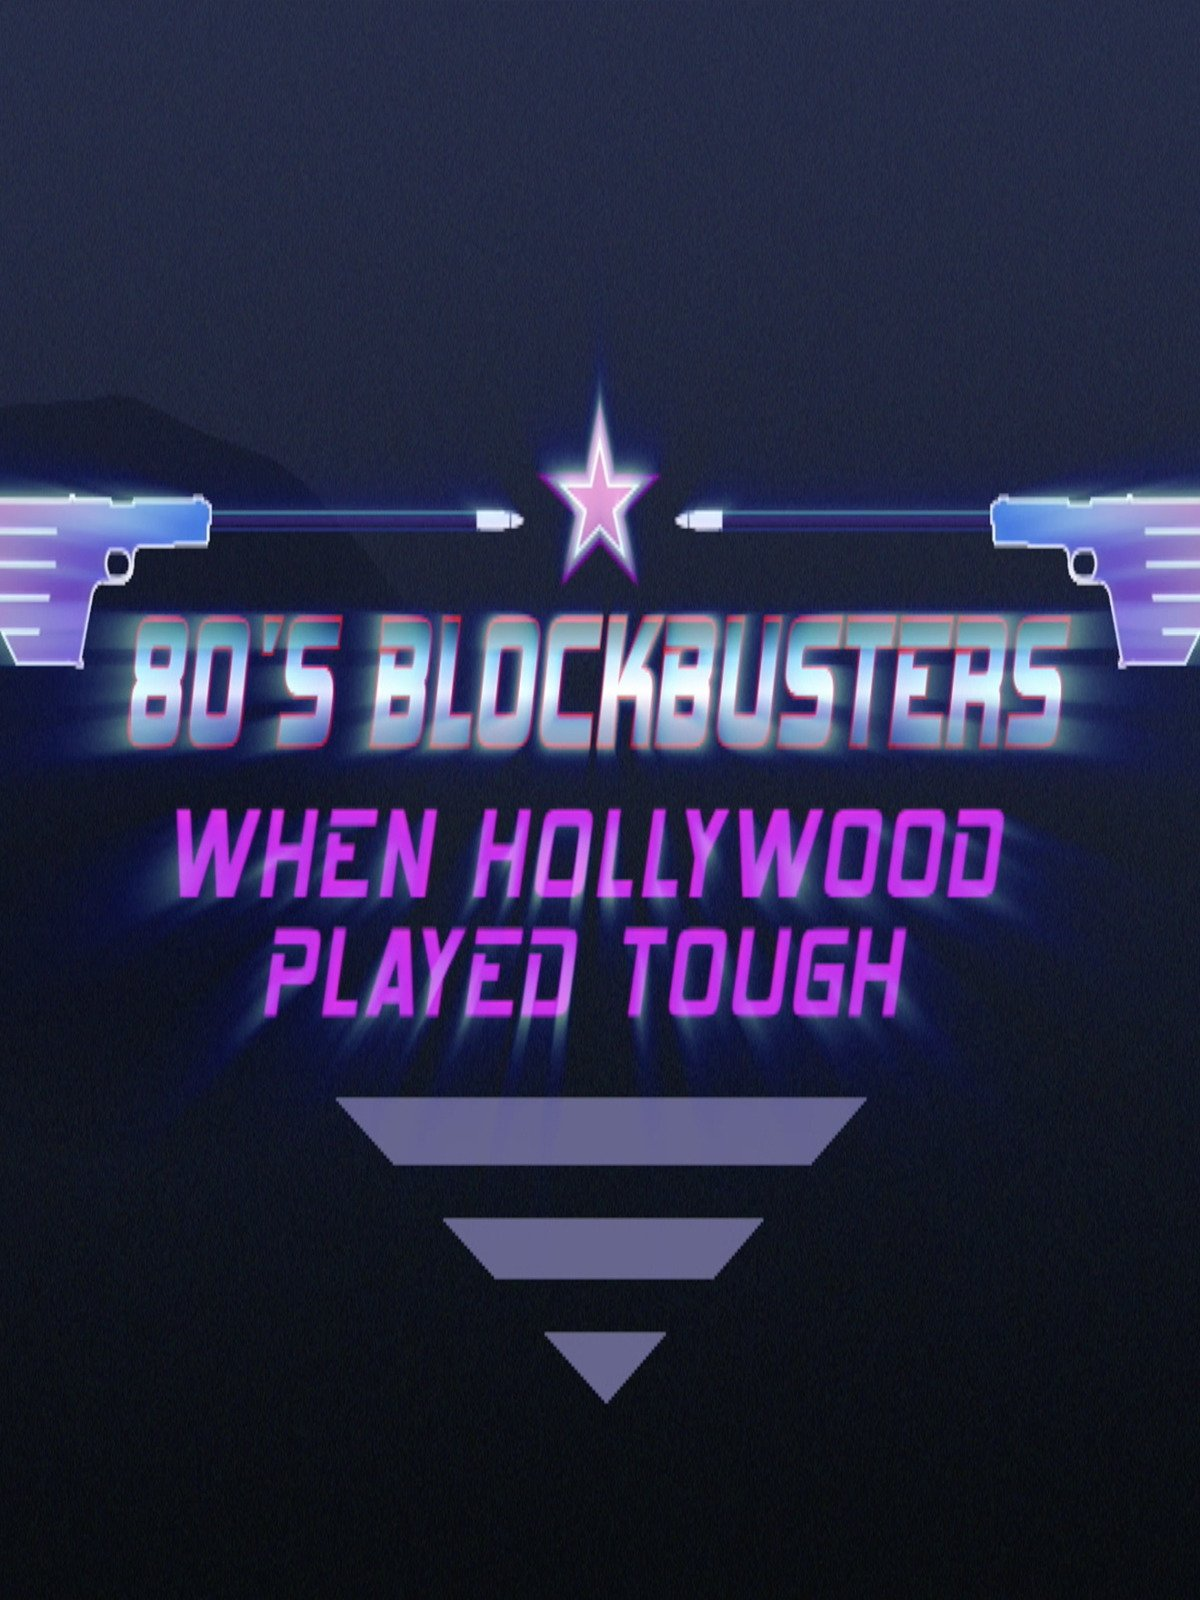 80's Blockbusters, When Hollywood Played Tough